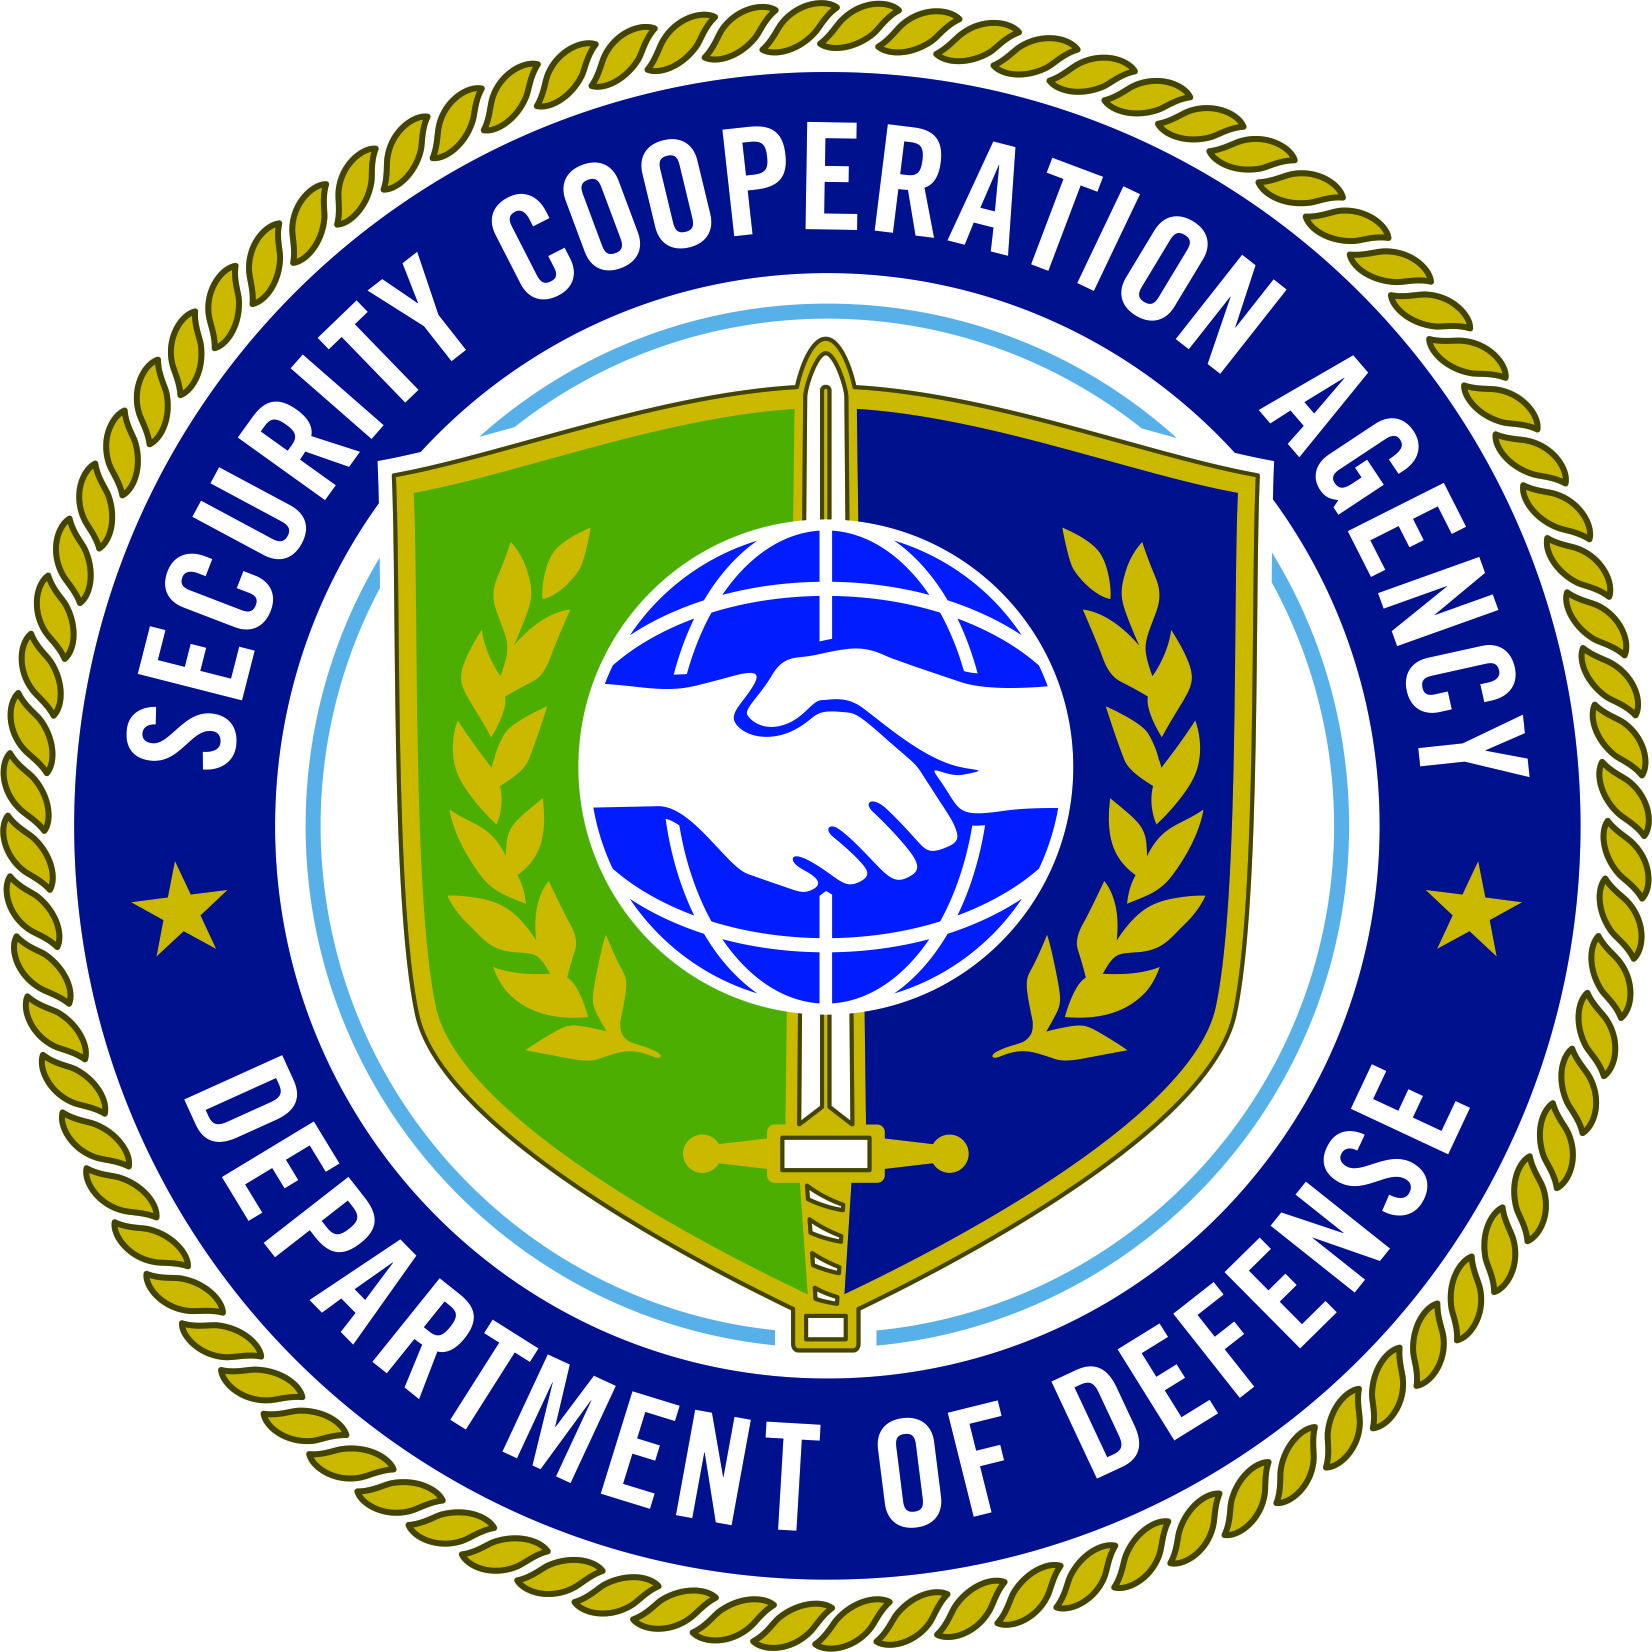 Defense Security Cooperation Agency Wikipedia